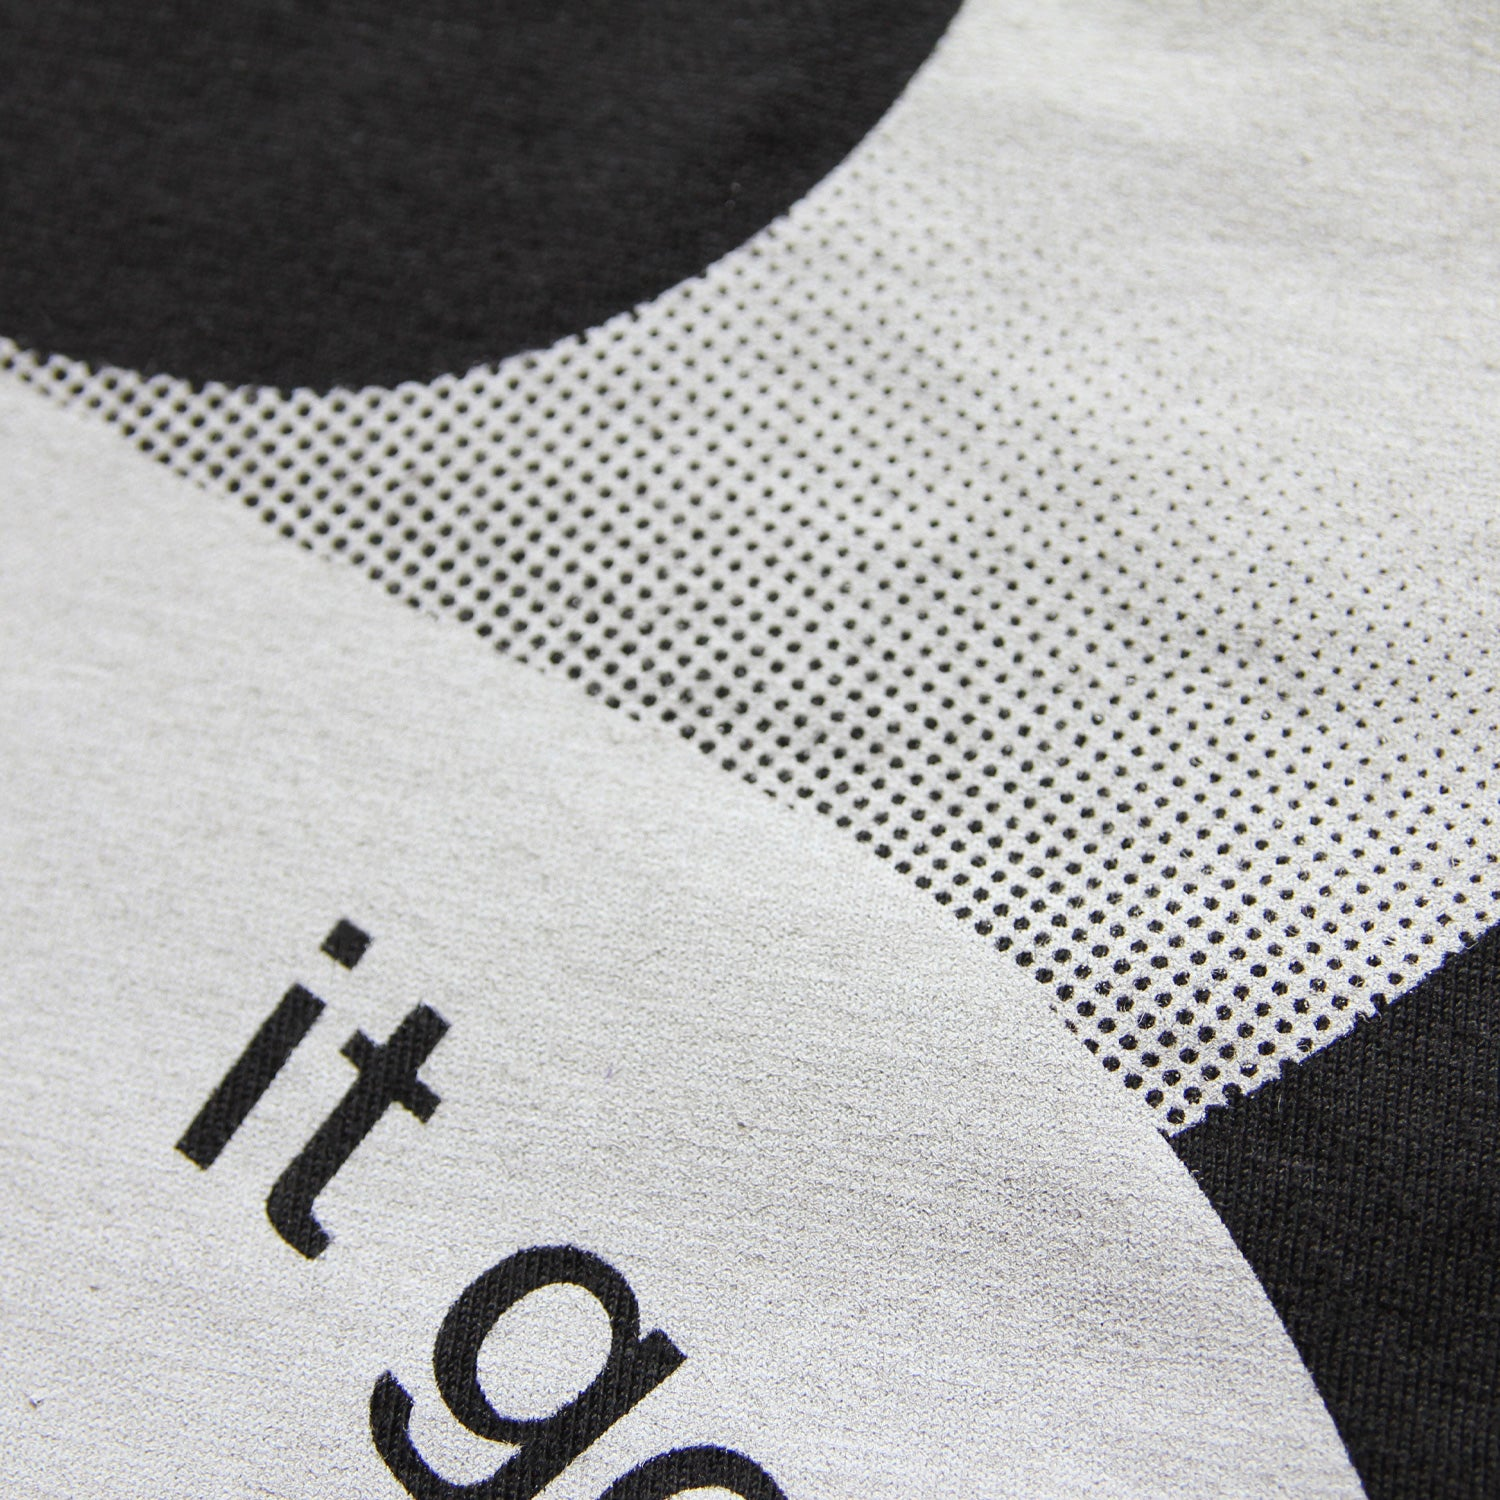 It Goes On - Minimal t-shirt design by Design Different